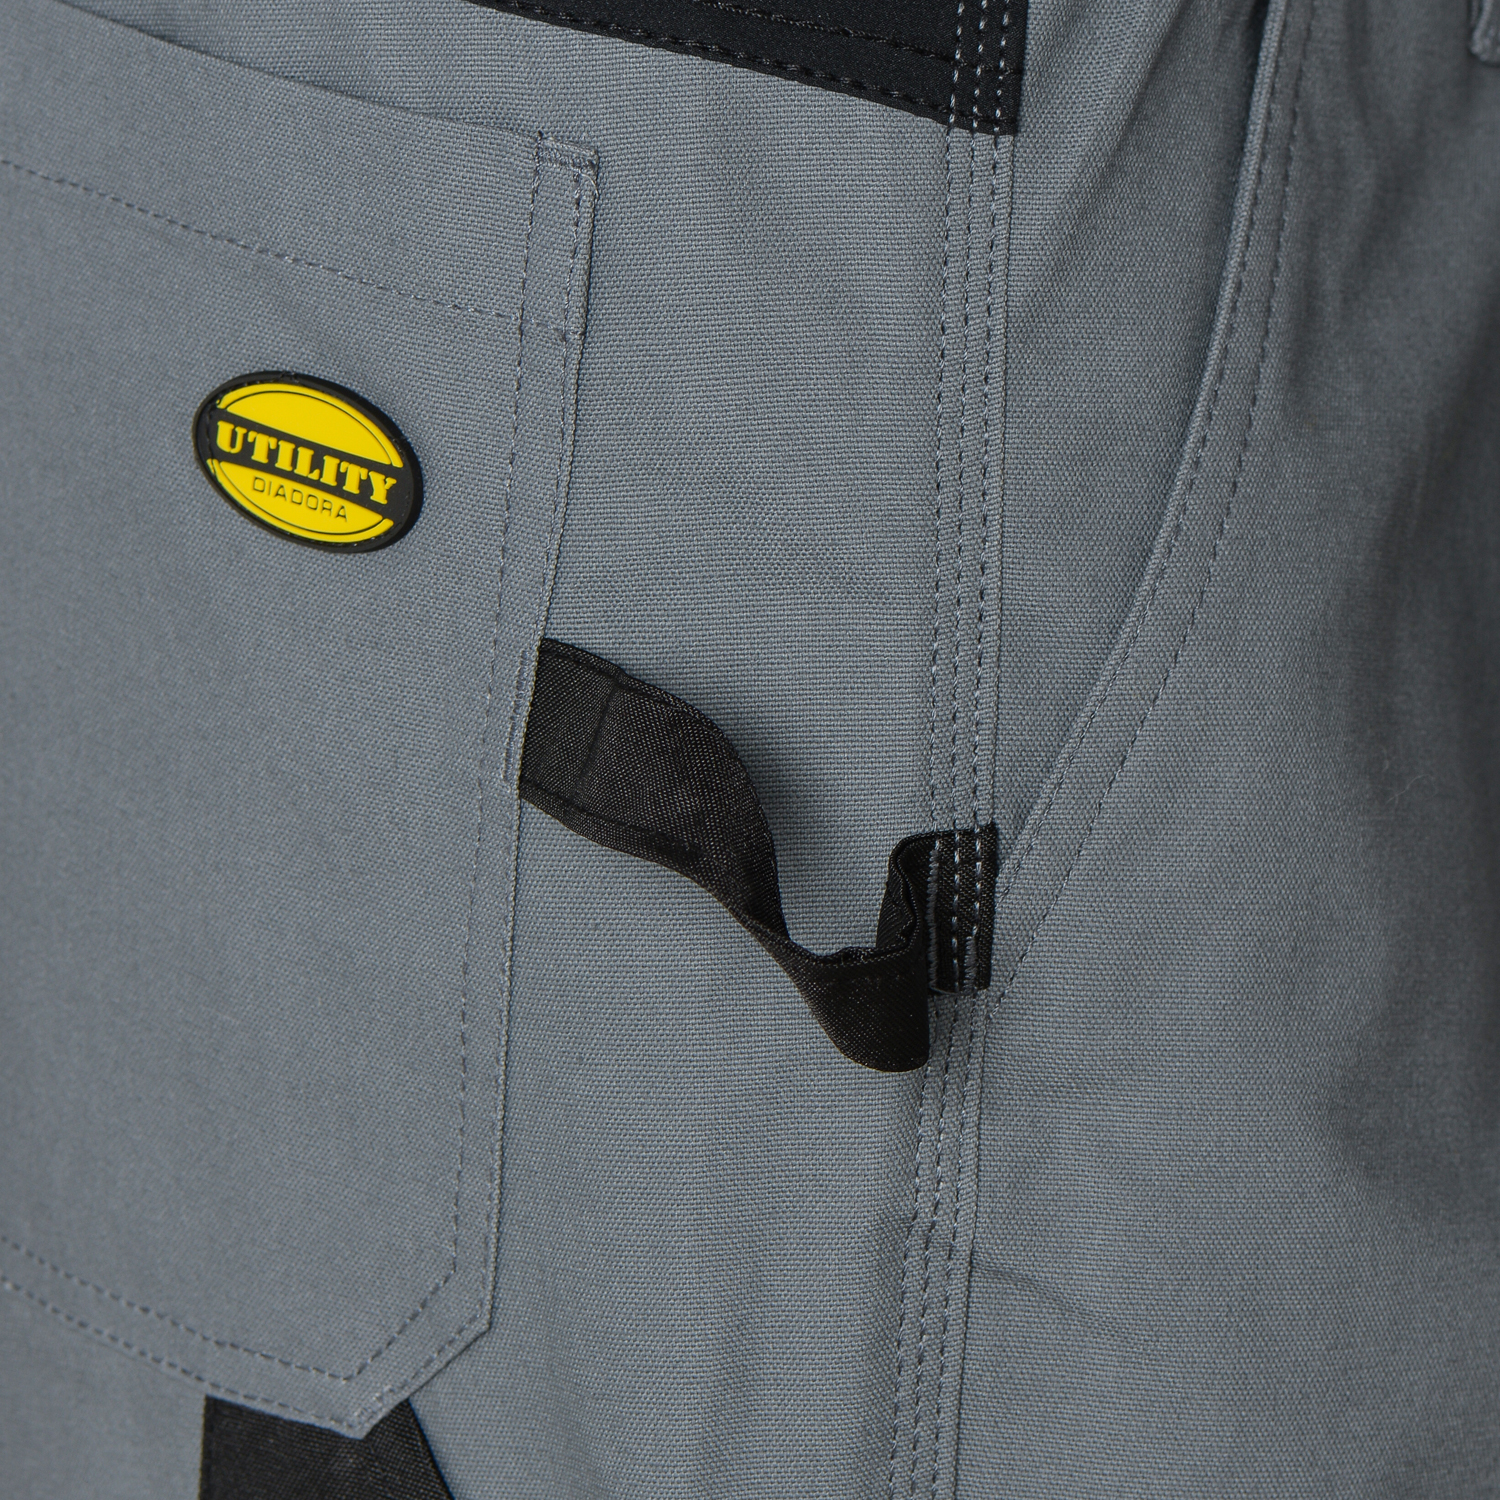 Utility Diadora Canvas ISO 13688:2013 for Man Work Trousers